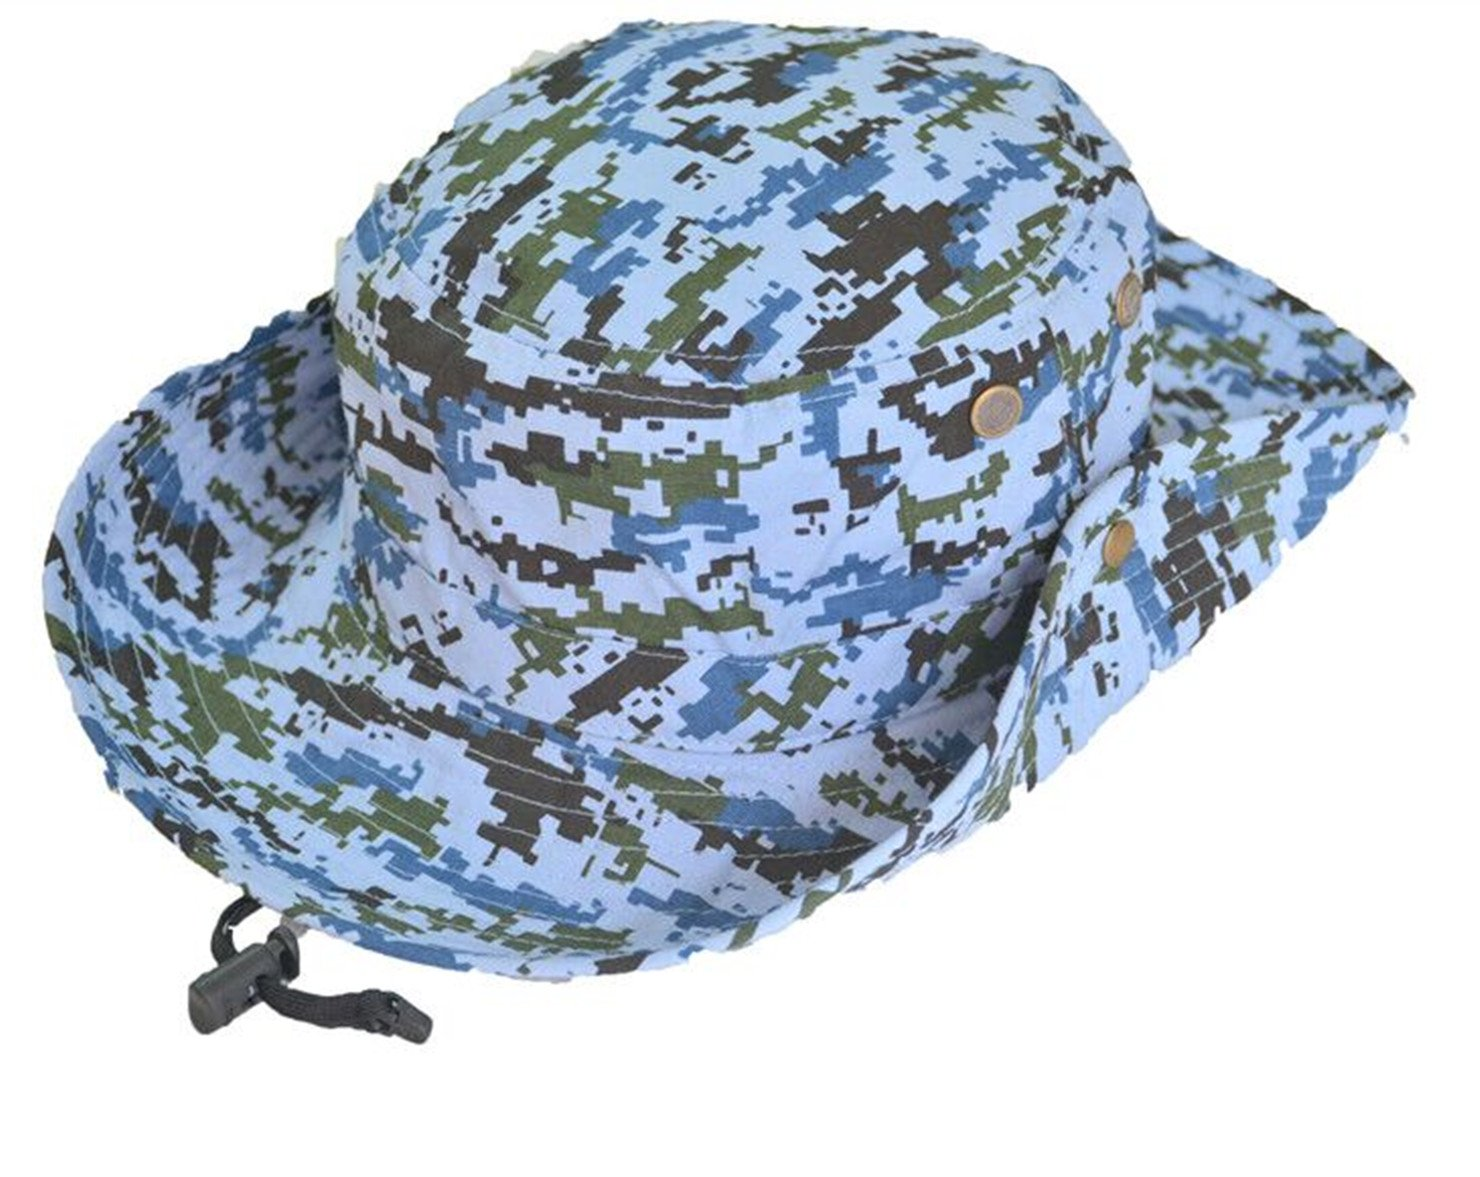 Unisex Kids Cotton Bucket Hat Sun Protective Hat with Chin Strap Camouflage Hat Summer Fishman Hat Navy Blue 4-6 Years